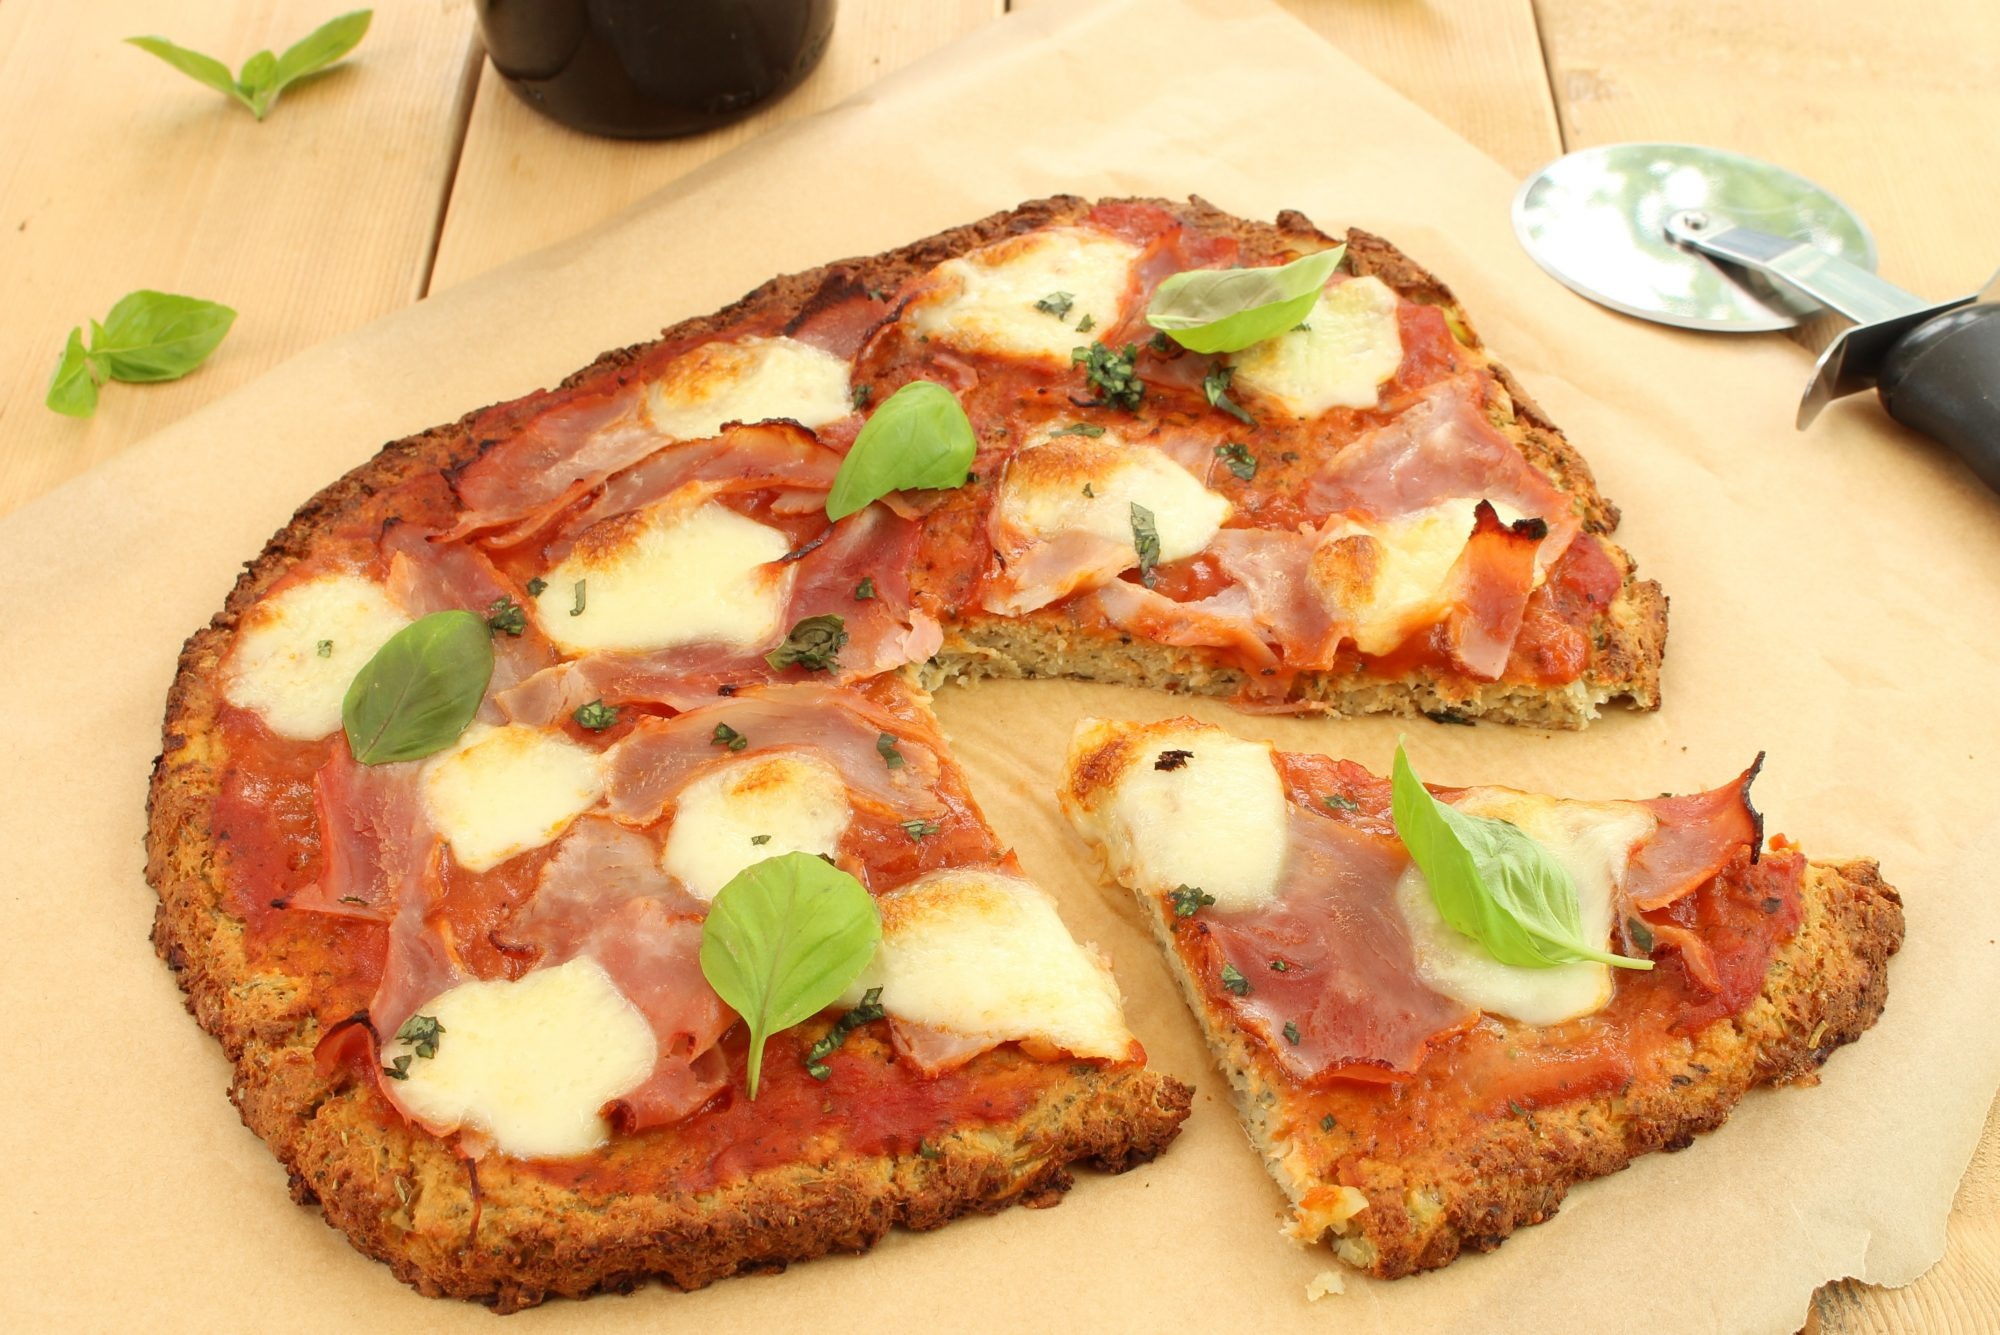 Protein Recipes Low Carb  The Ultimate High Protein Low Carb Pizza Recipe